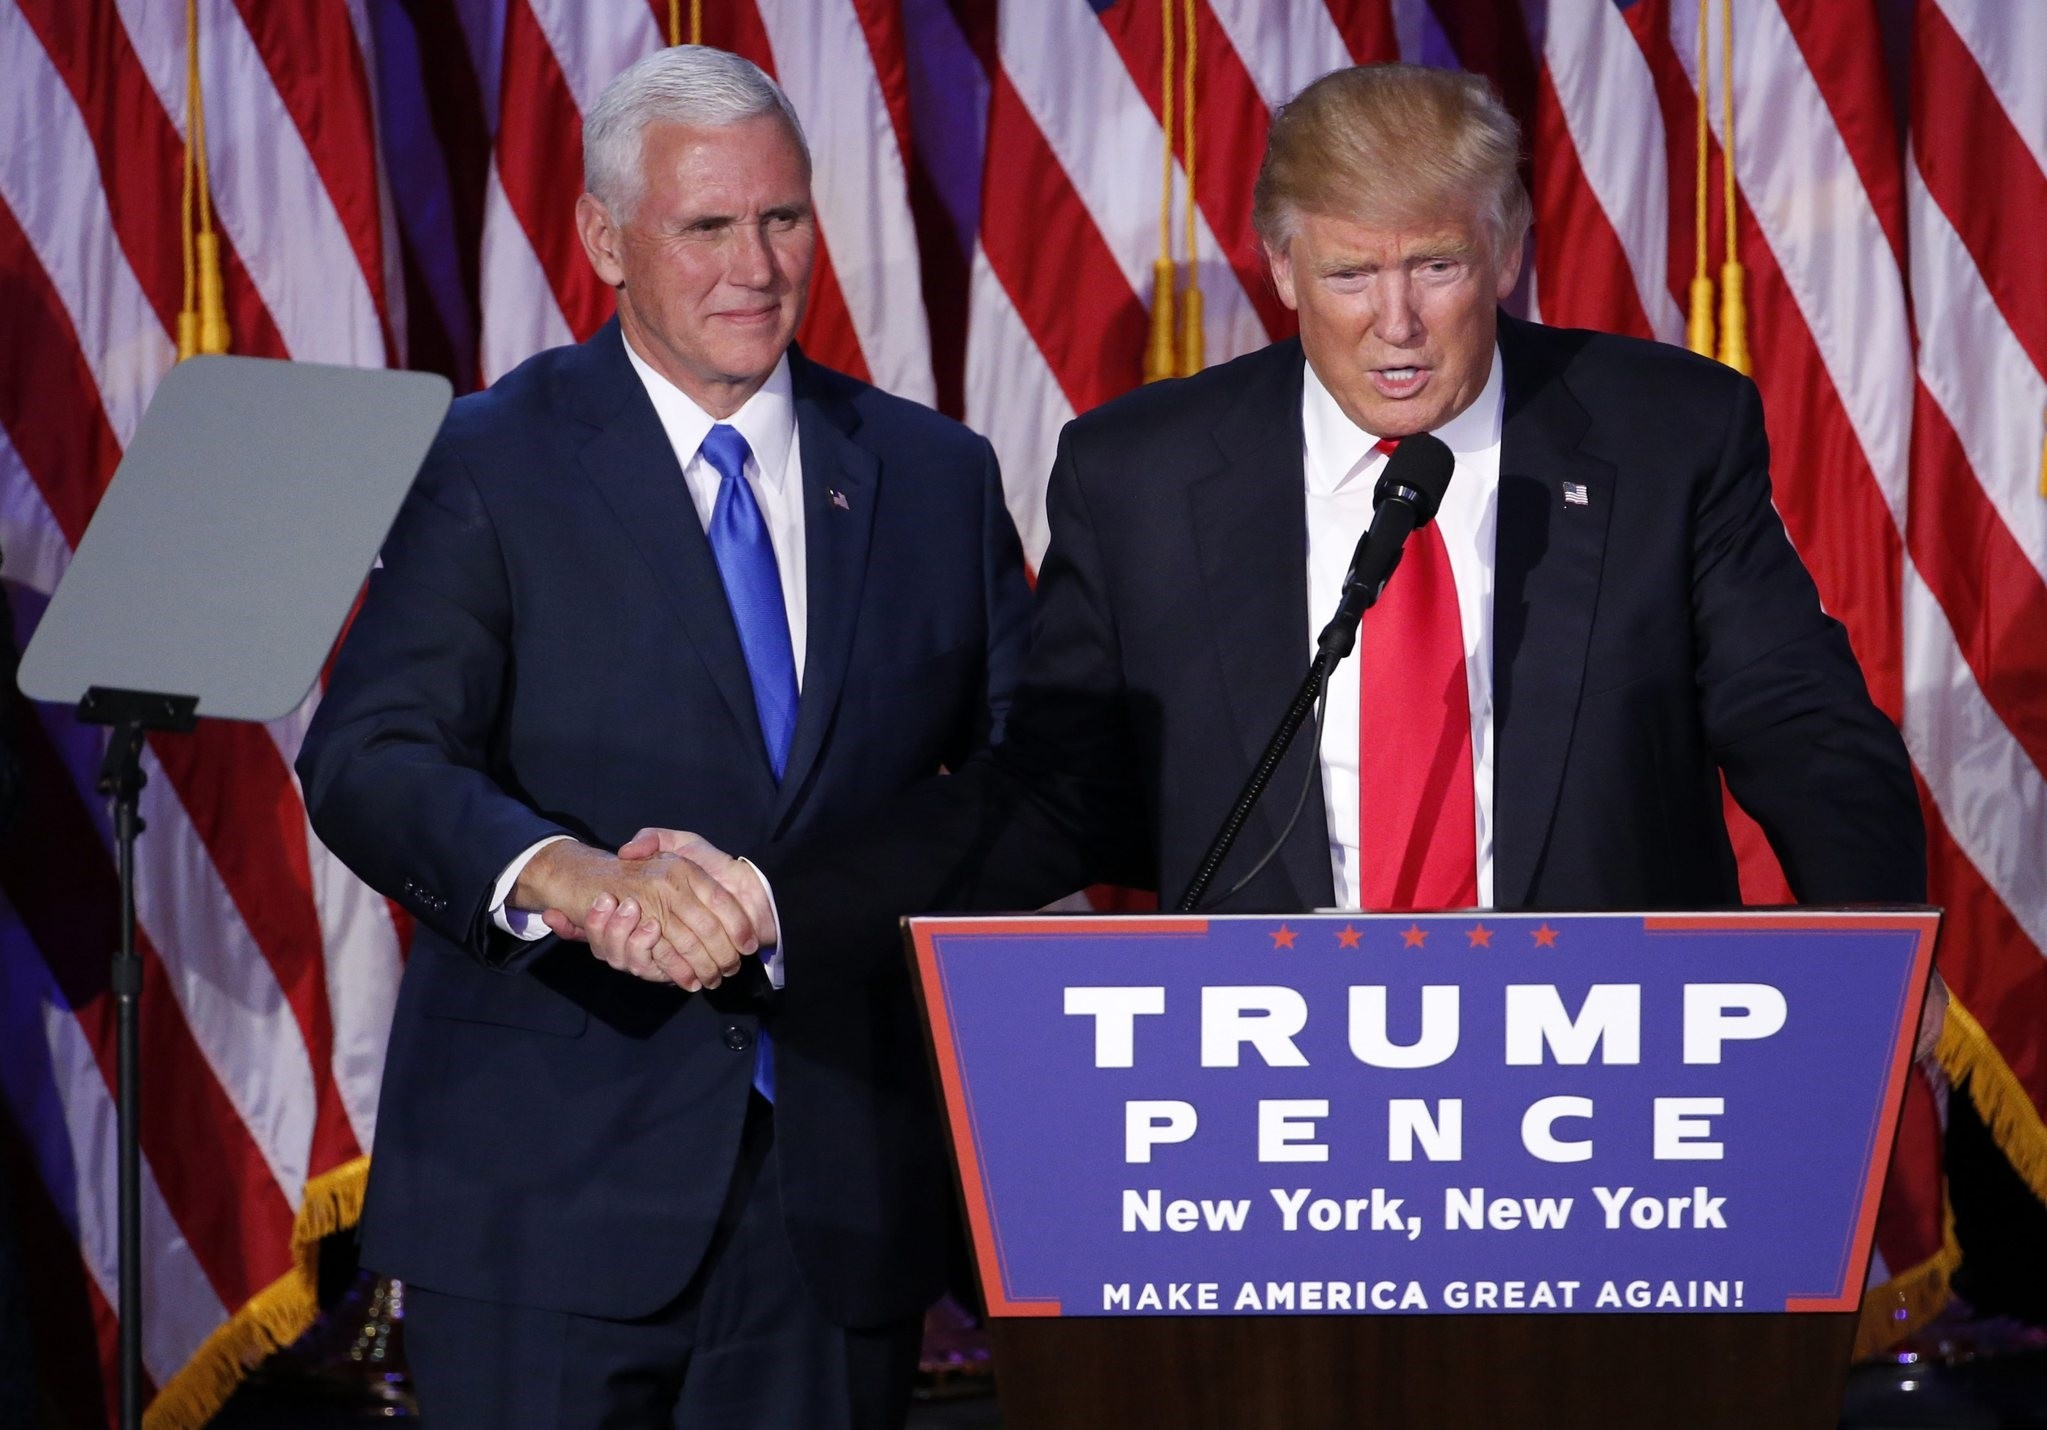 Then U.S. Republican presidential nominee Donald Trump shakes hands with running mate Mike Pence as he delivers a speech while the presidential votes continue to be counted, New York, Nov. 8, 2016.